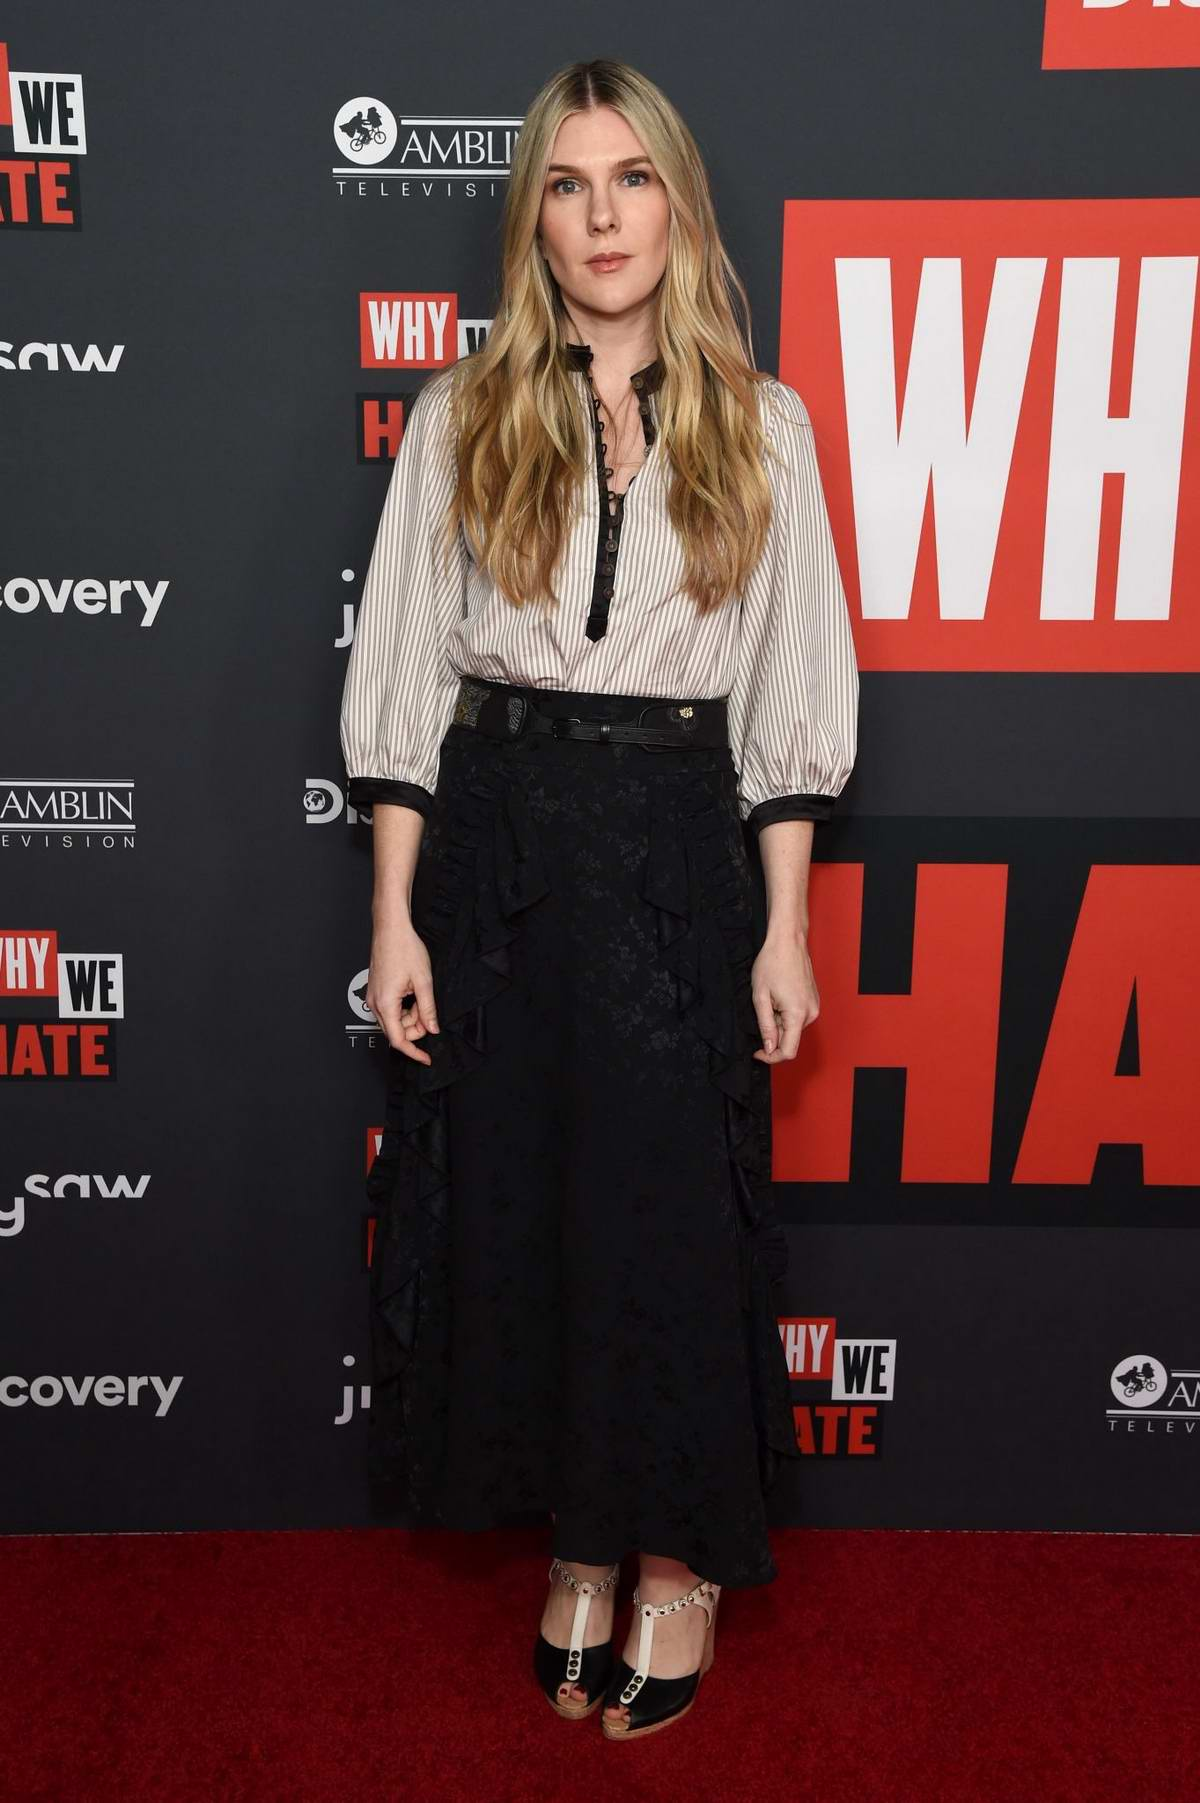 Lily Rabe attends the premiere of 'Why We Hate' at Museum Of Tolerance in Los Angeles